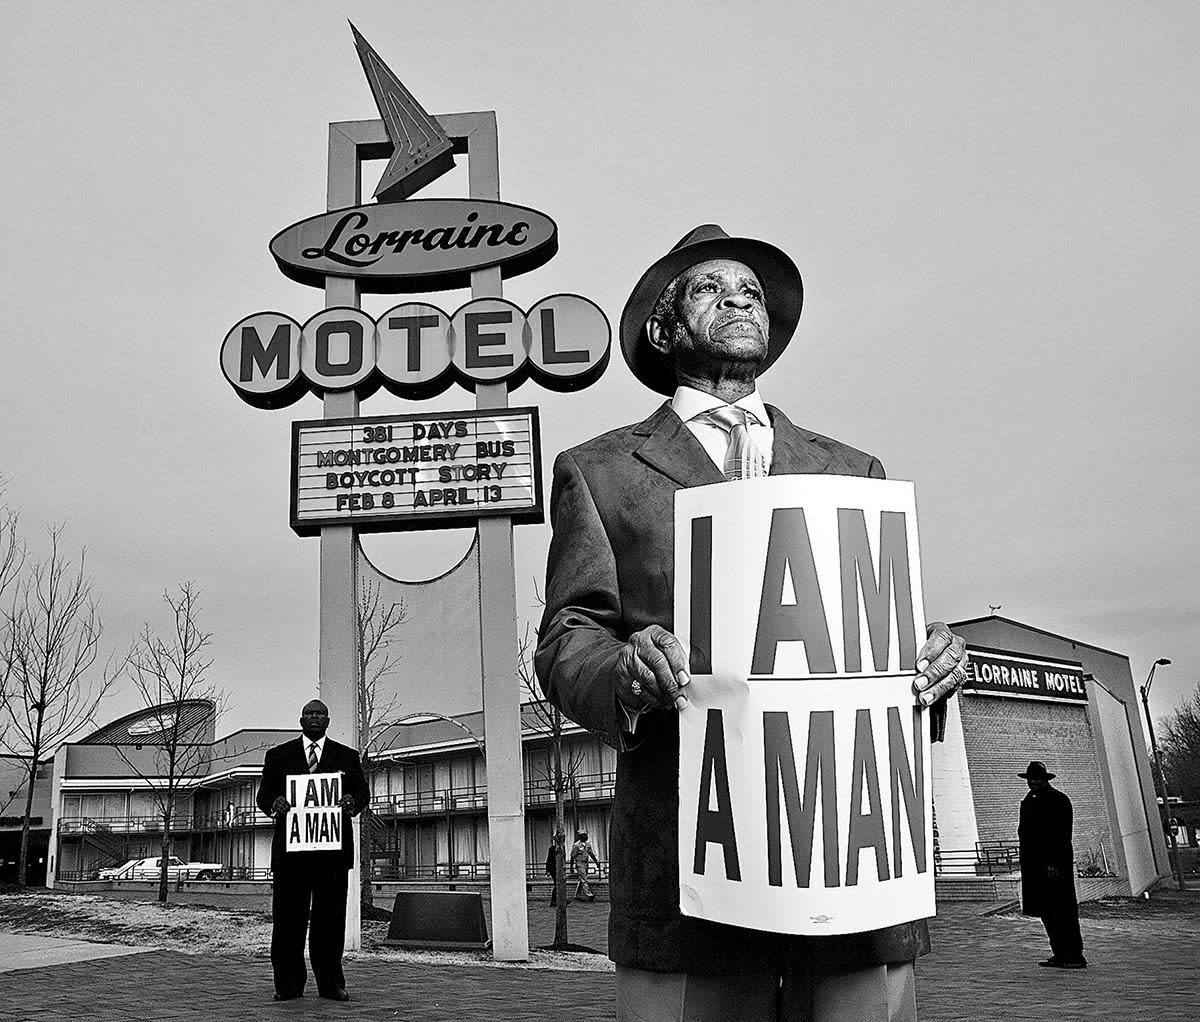 Memphis sanitation workers Elmore Nickelberry, 76, center, and his son, Terrence, left, holding replica signs used by the 1968 Memphis strikers, in front of the former Lorraine Motel where Martin Luther King, Jr. was assassinated, 2008. (Credit: Carl Juste/Miami Herald/MCT via Getty Images)